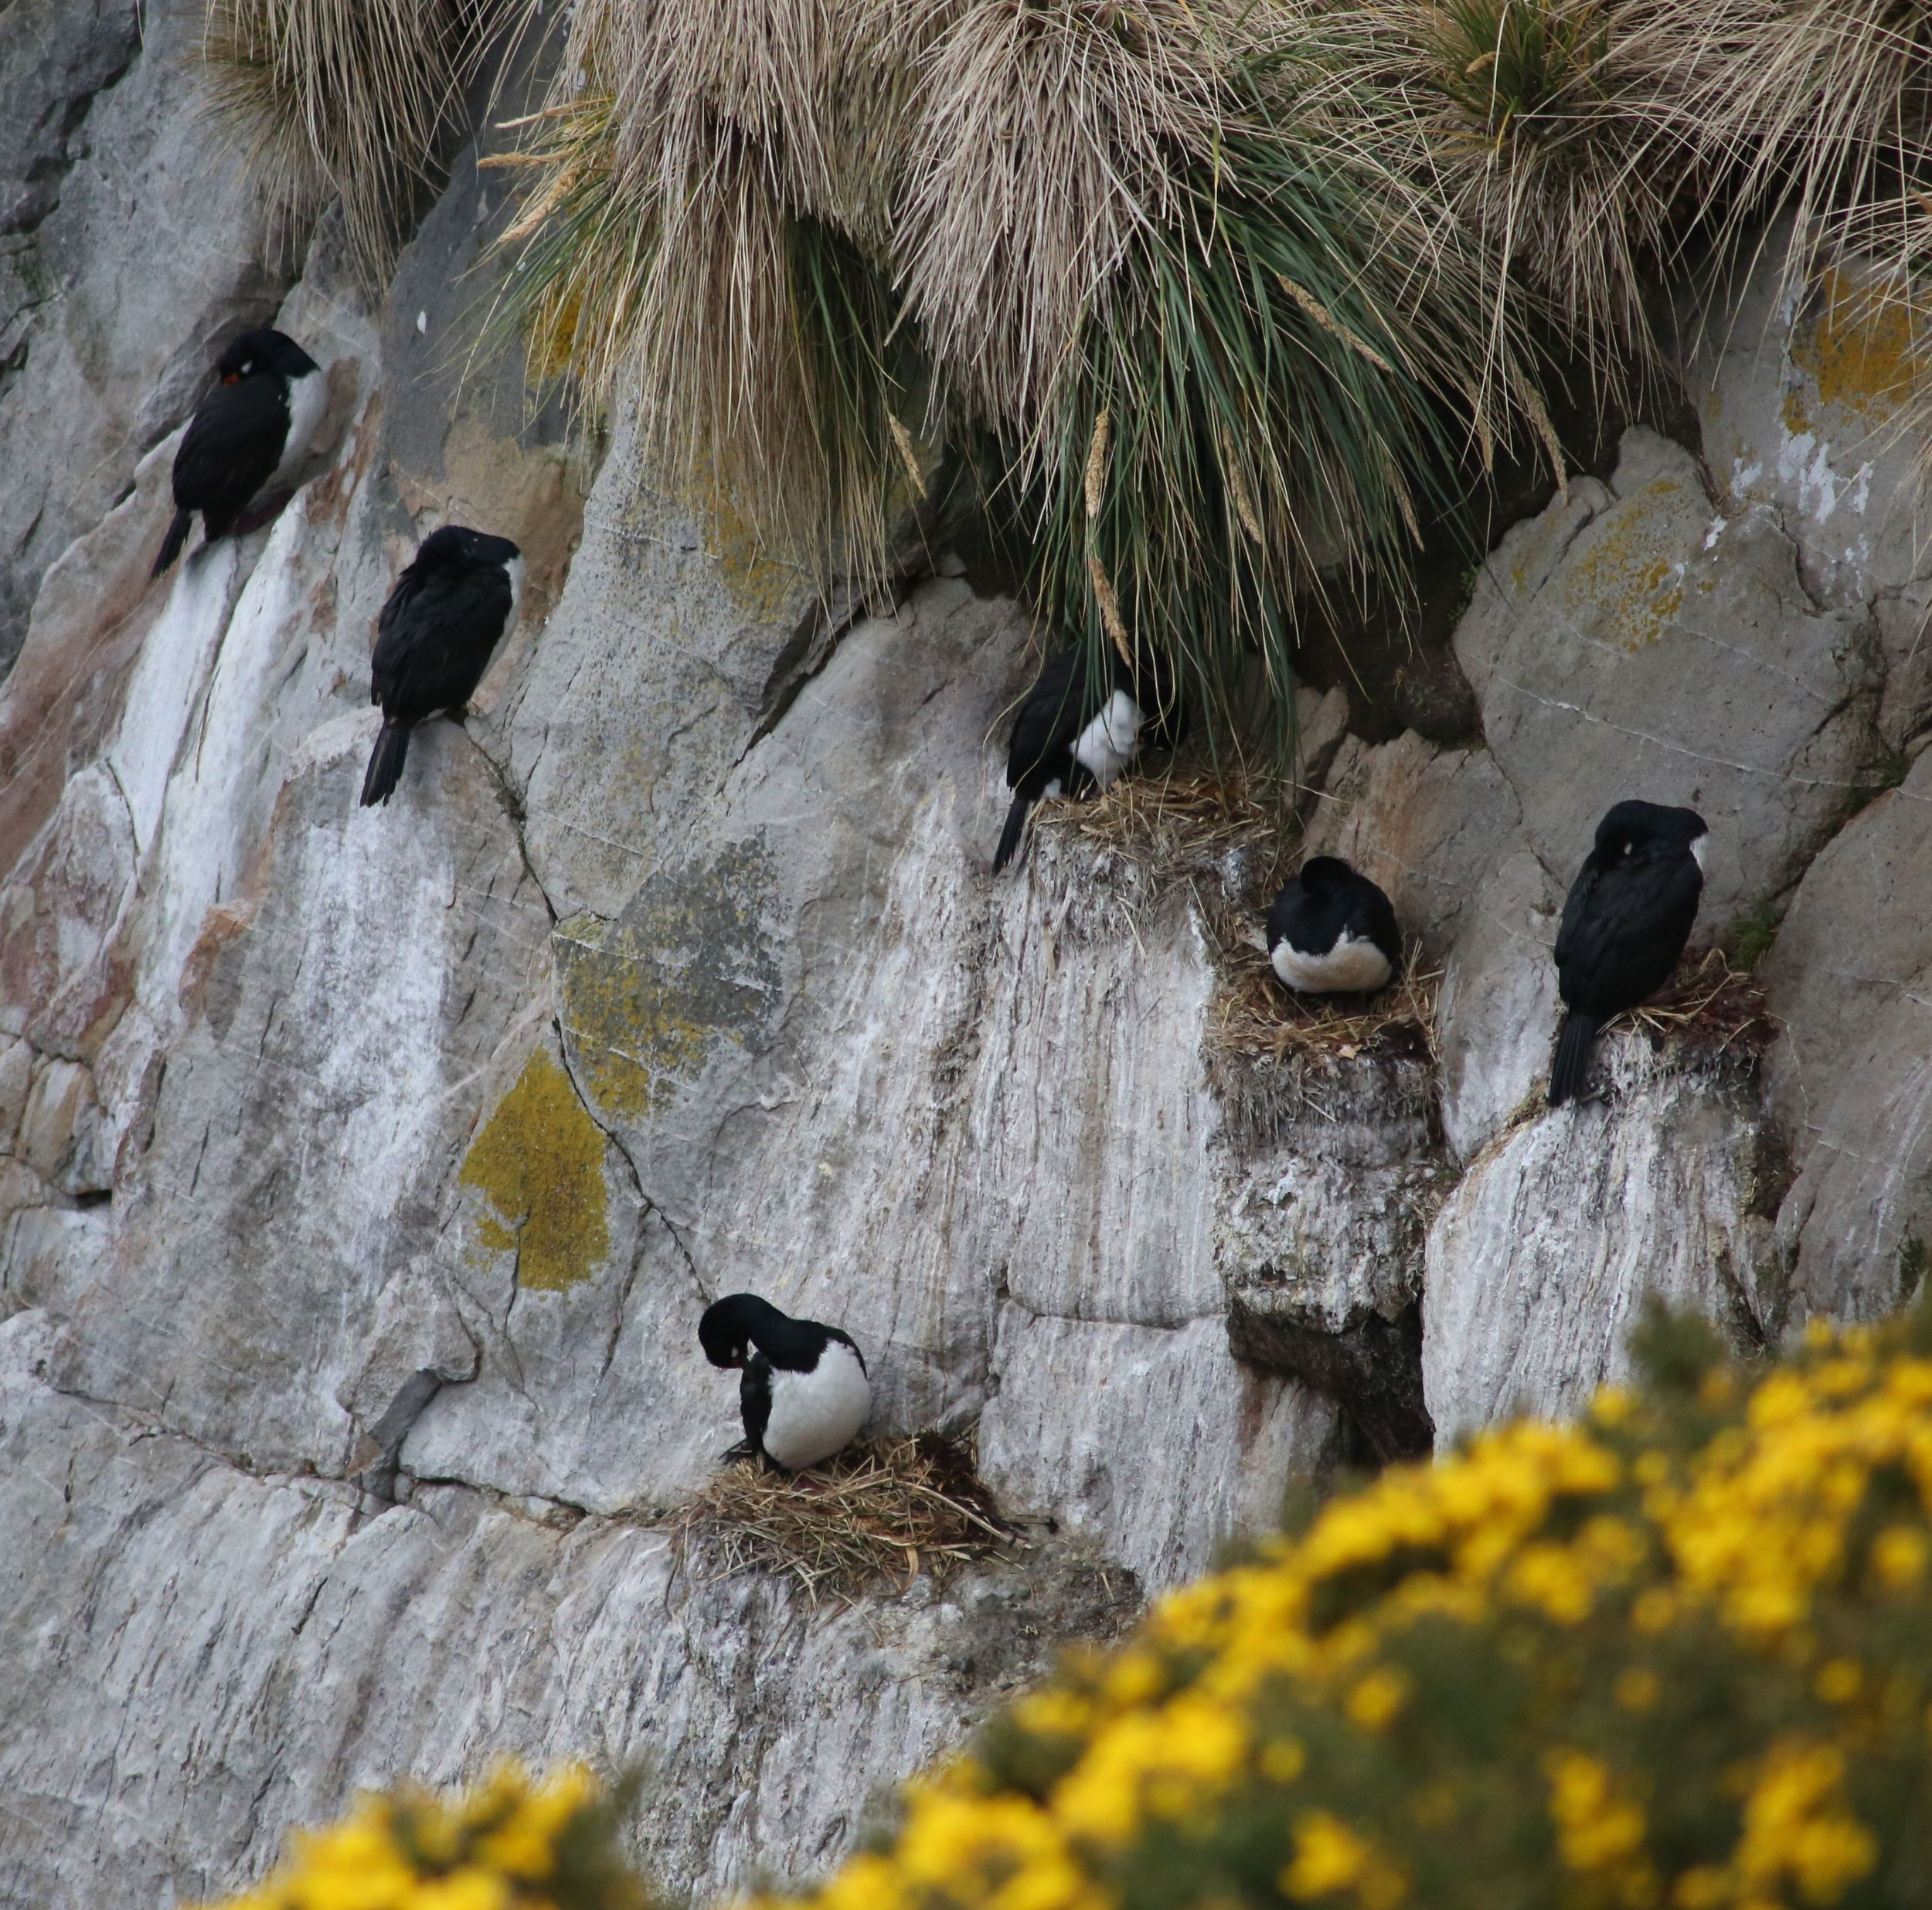 Rock shags on their nests.